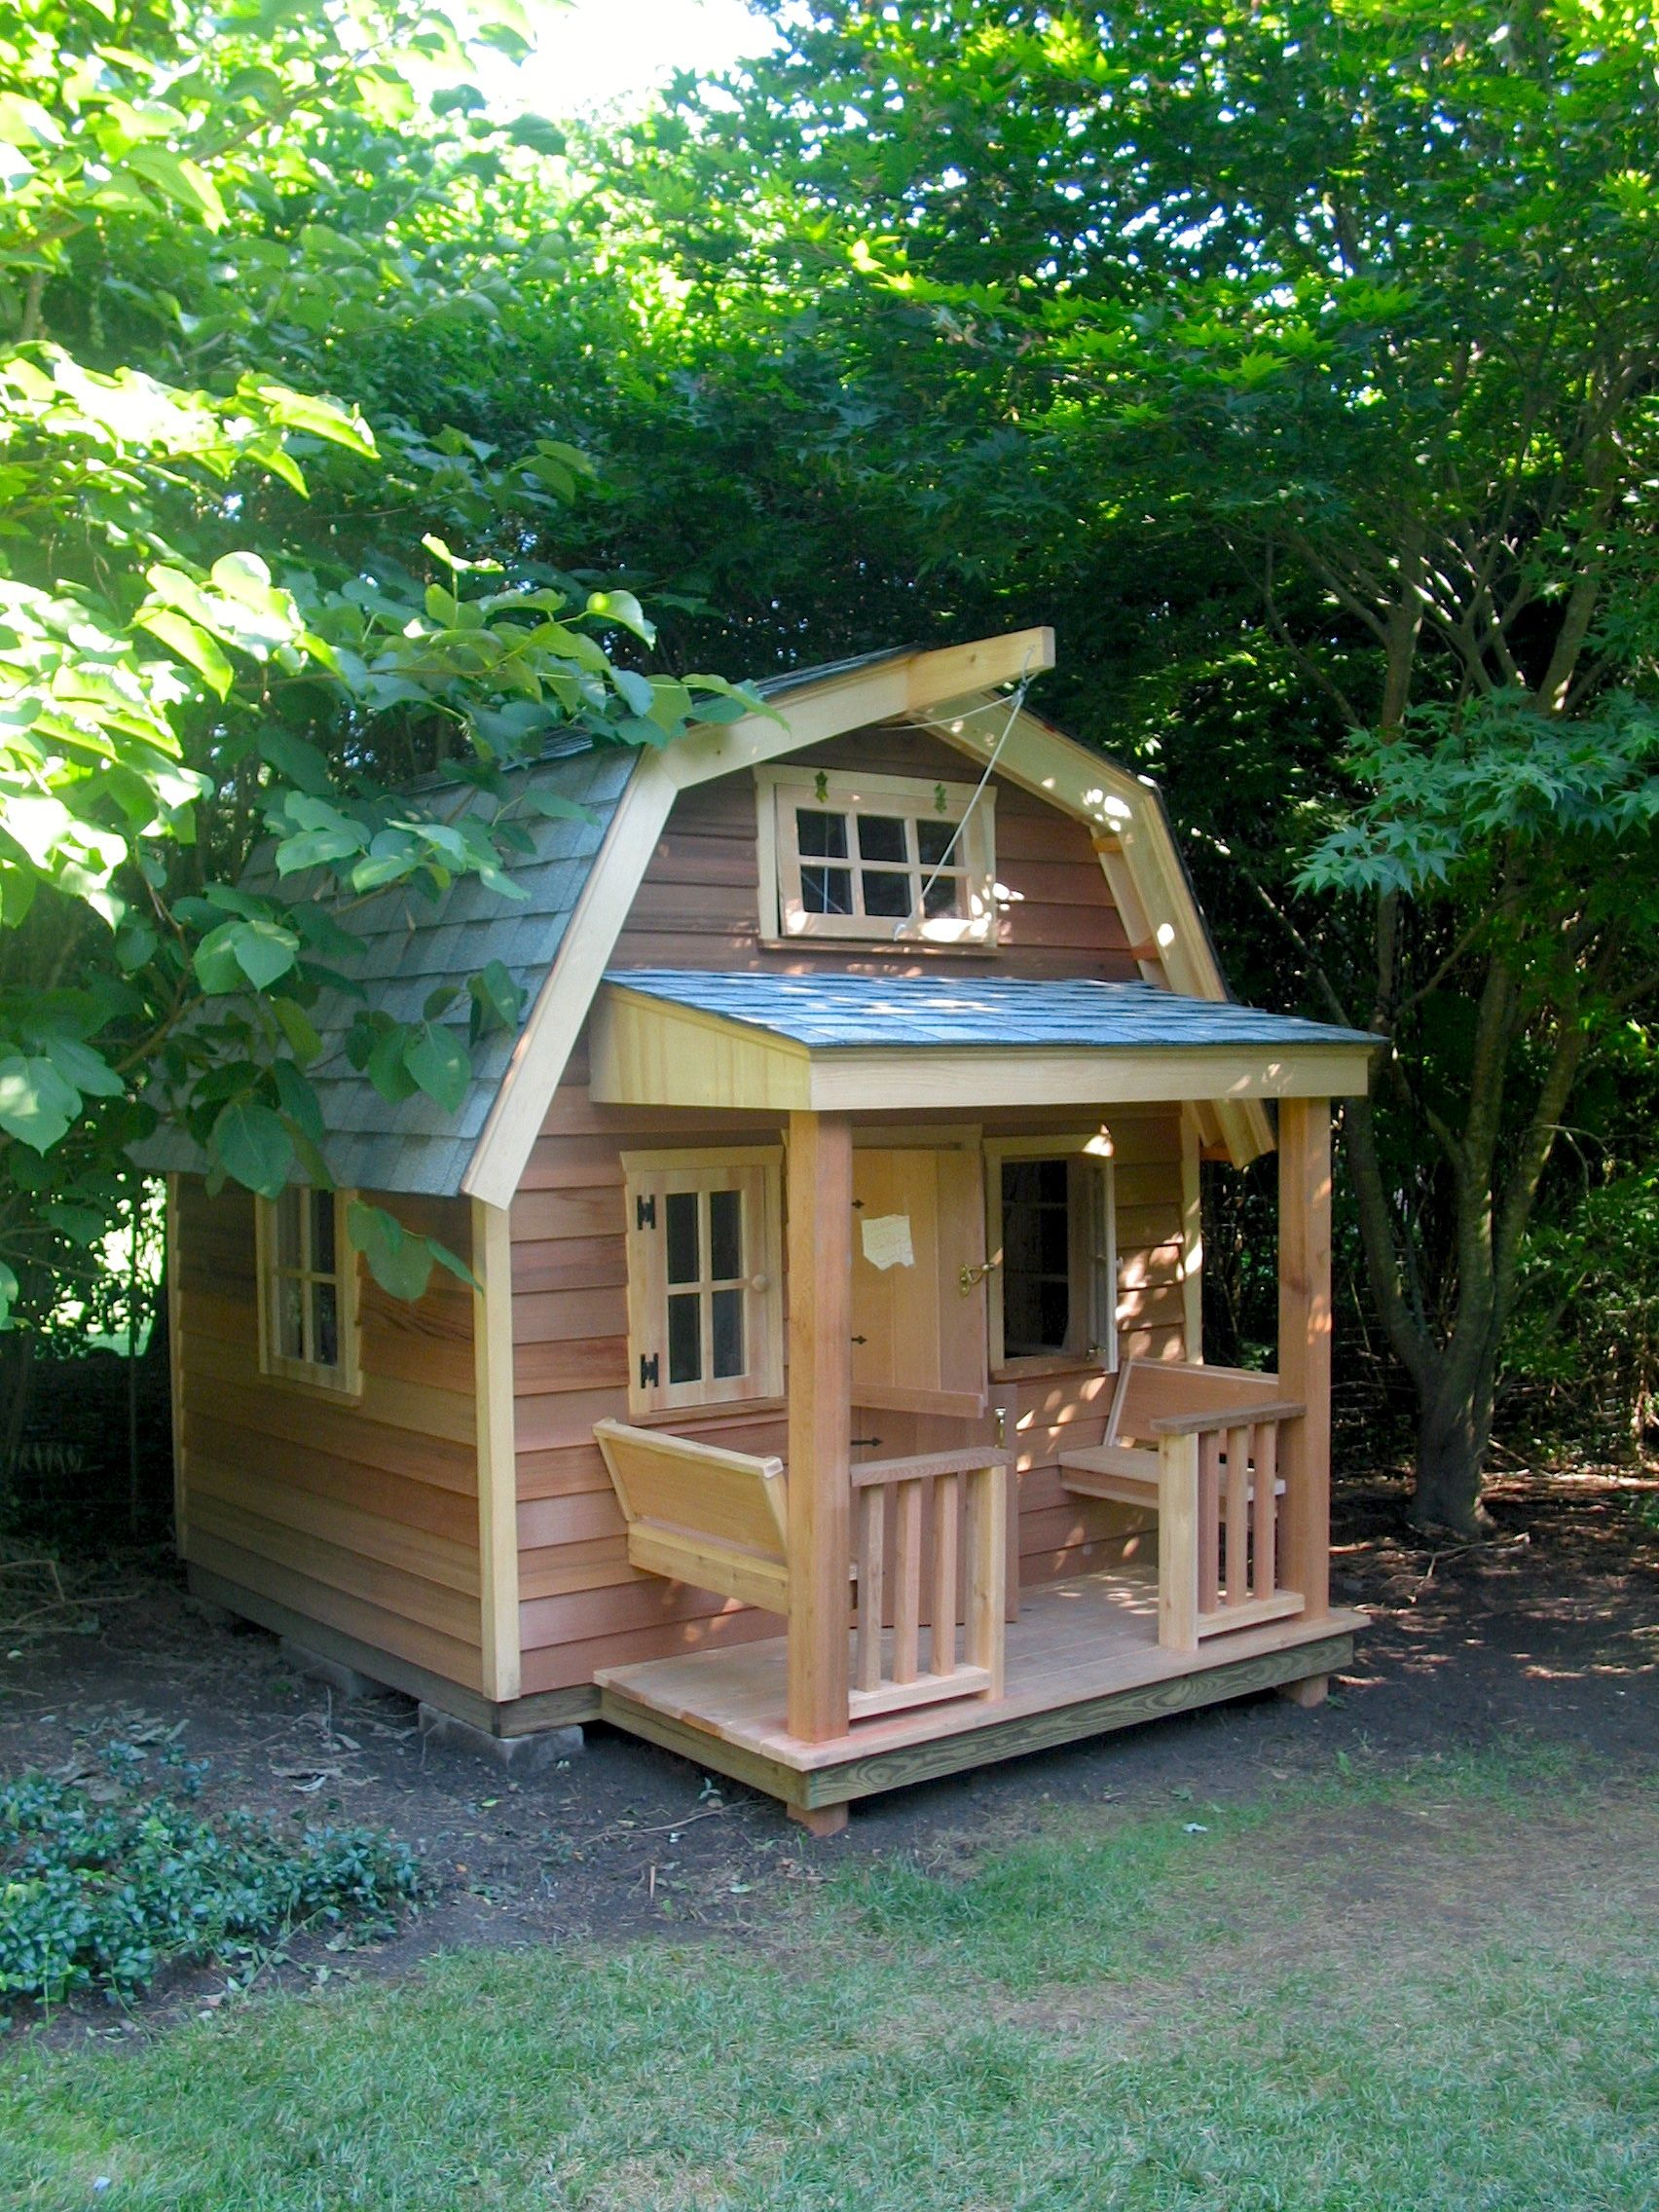 build this gambrel roof playhouse for your kids this summer and